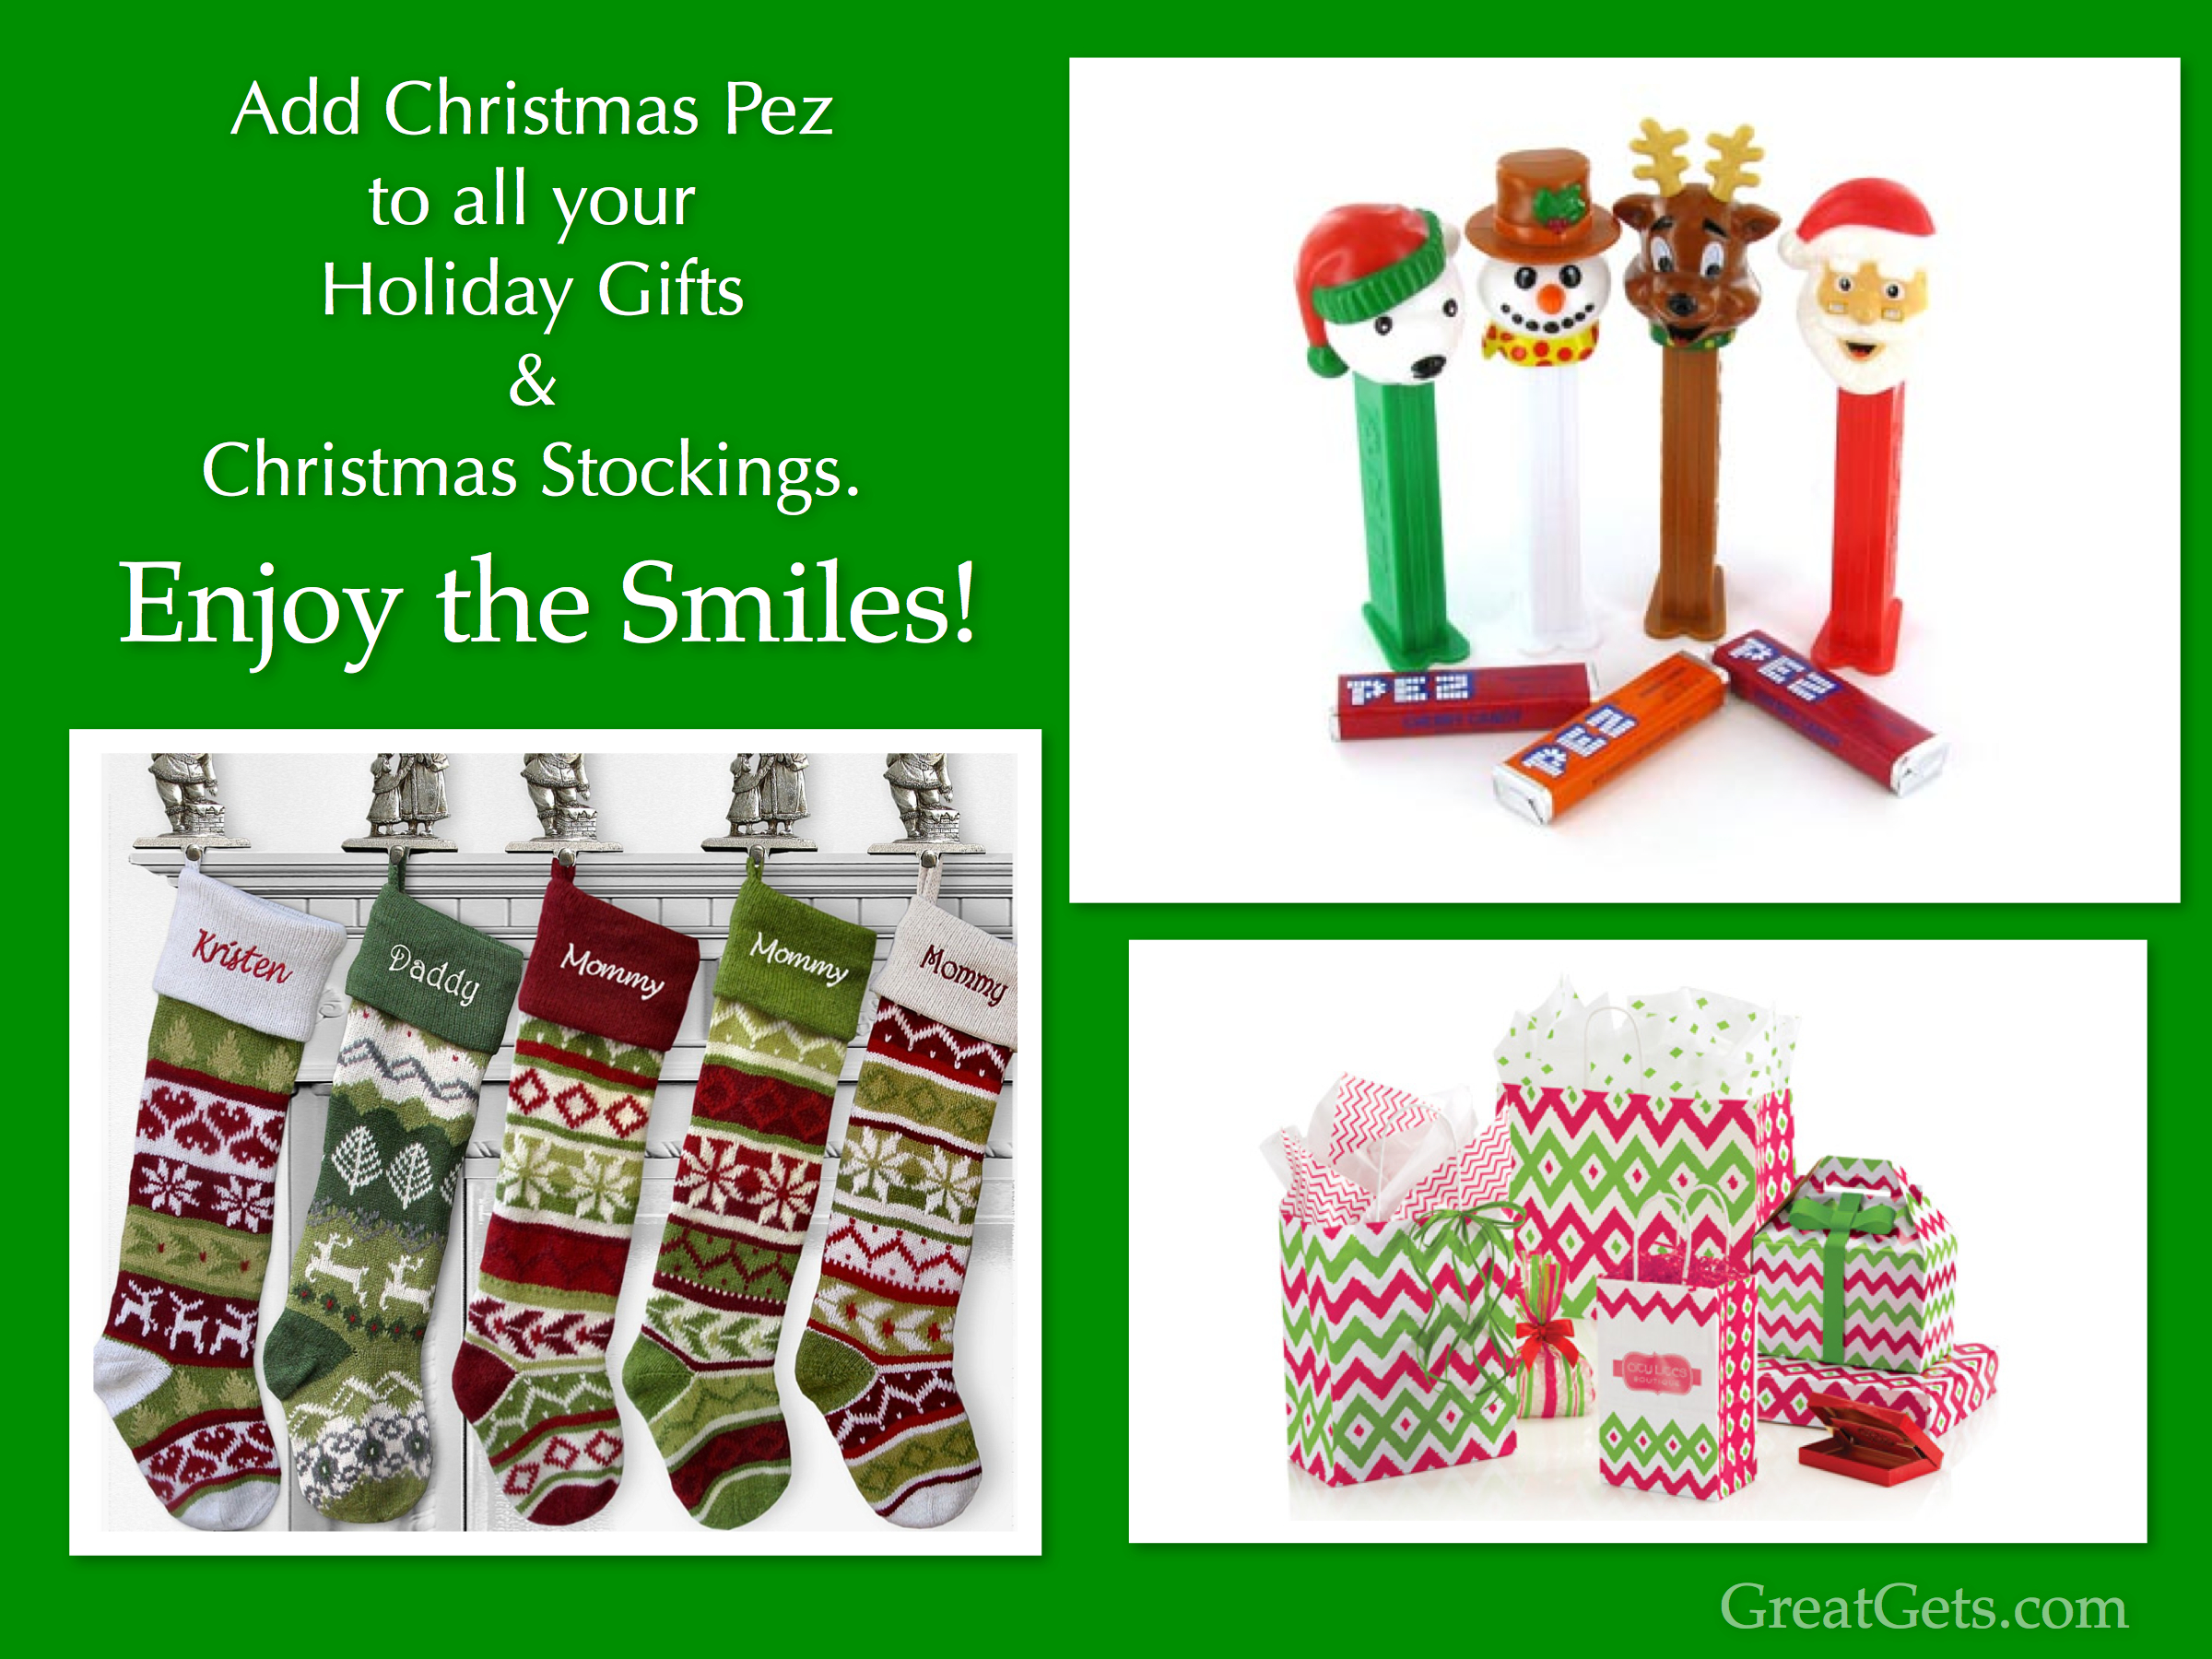 Add Christmas Pez to your Holiday Gifts & Christmas Stockings